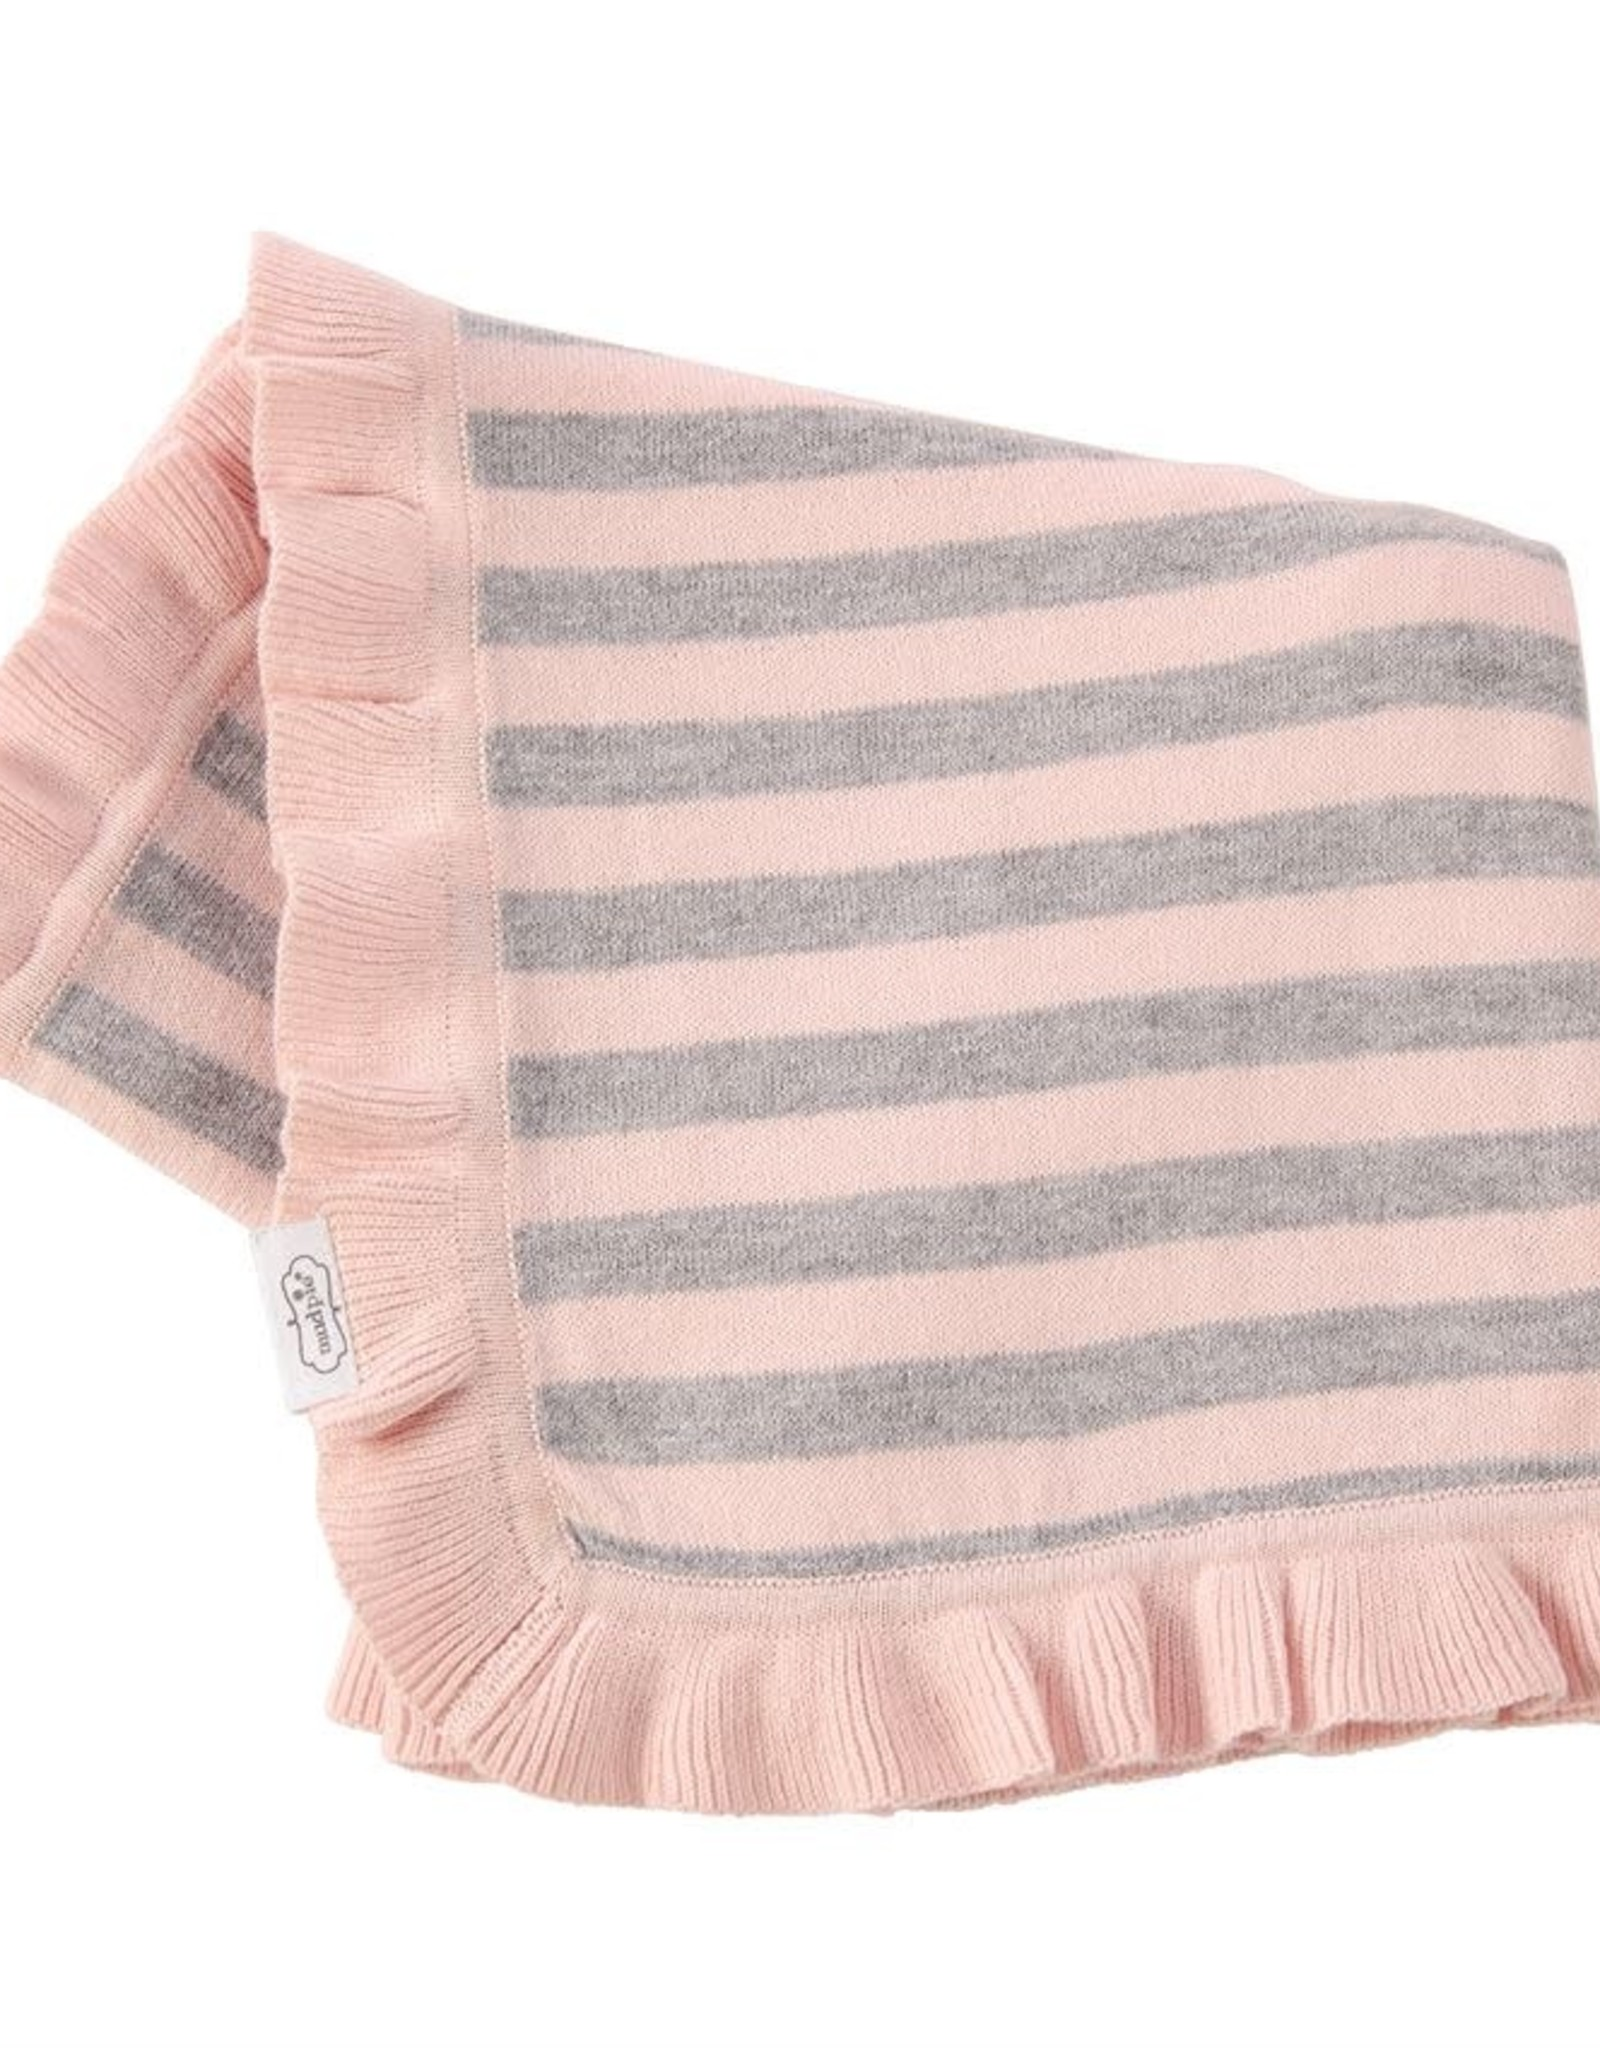 Pink and Grey Ruffle Knit Blanket